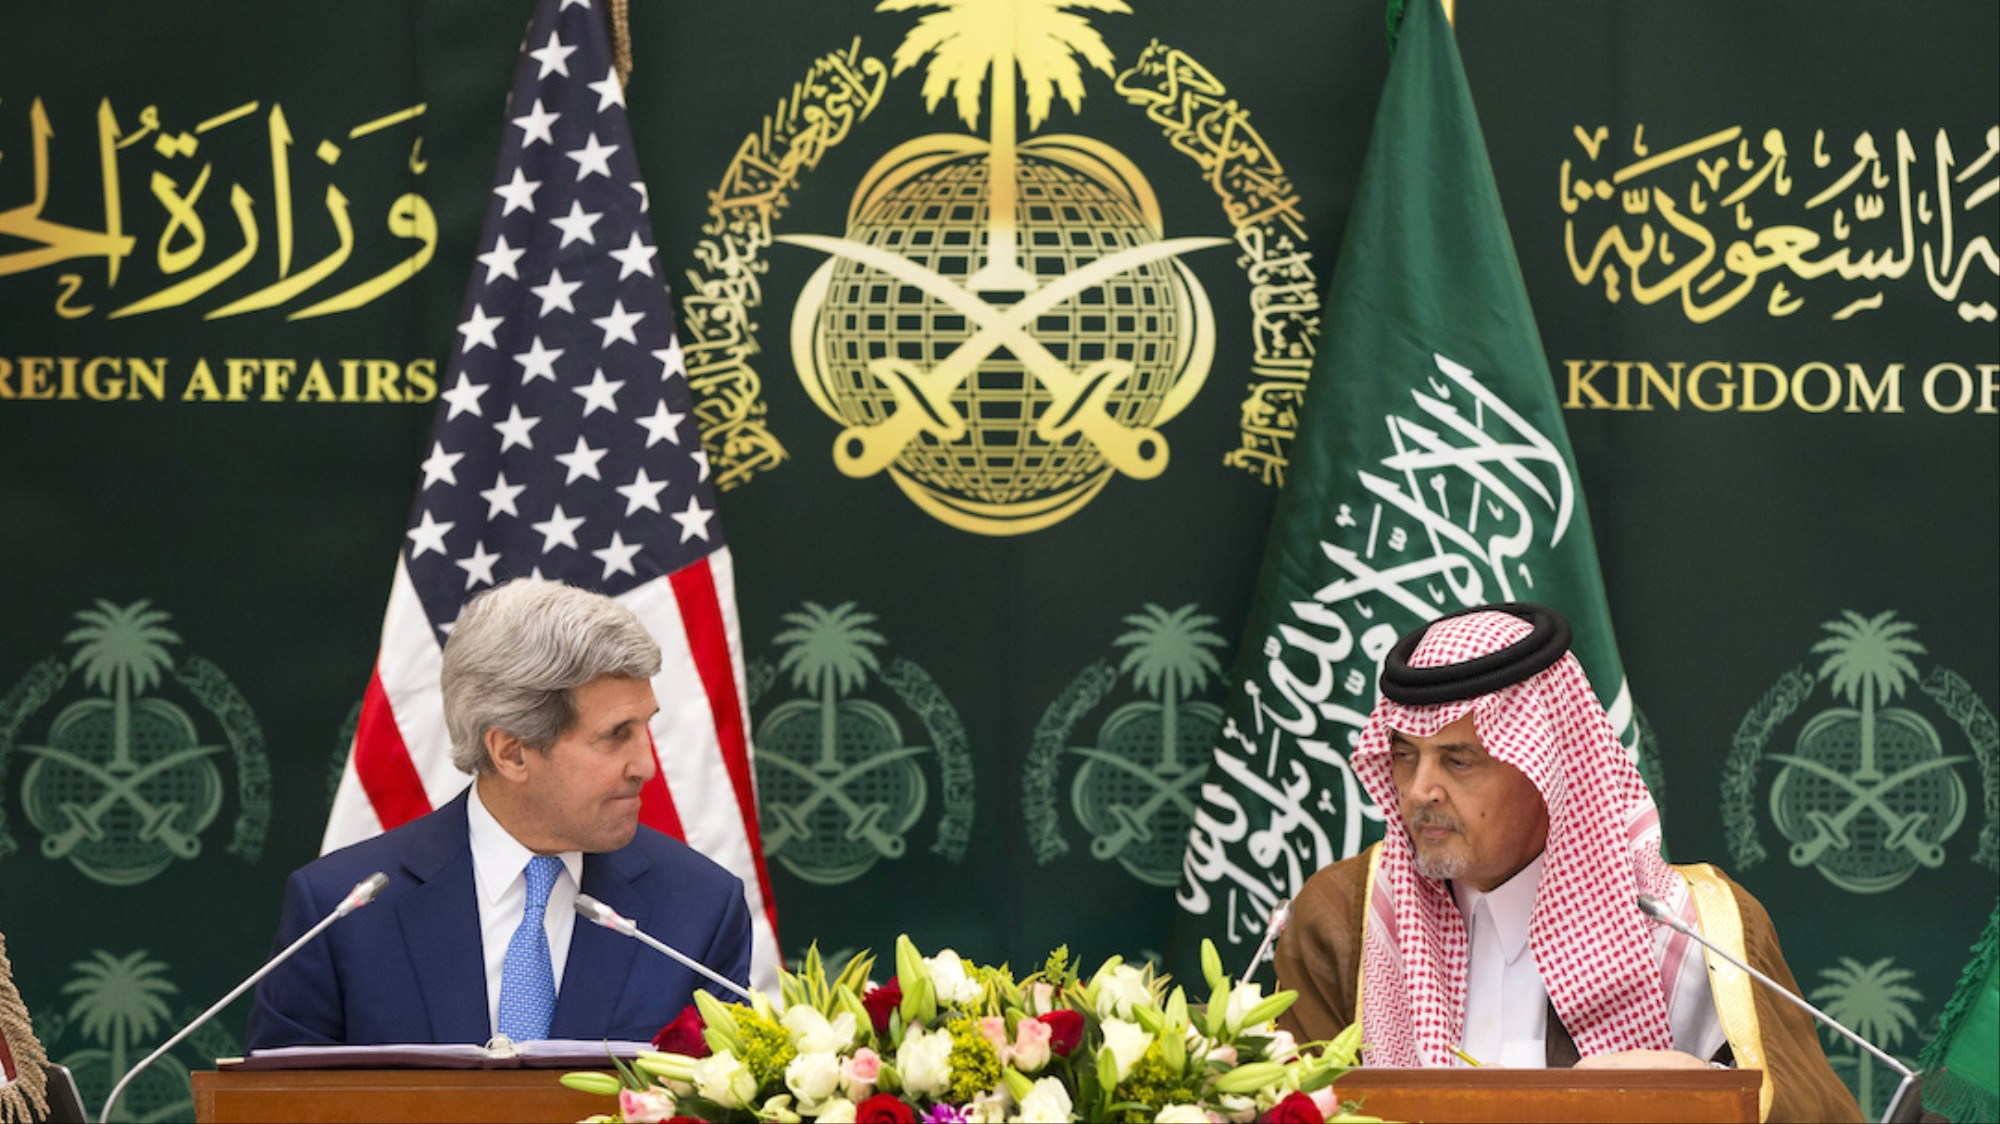 Saudi Arabia Says It Will Want Same Enrichment Rights as